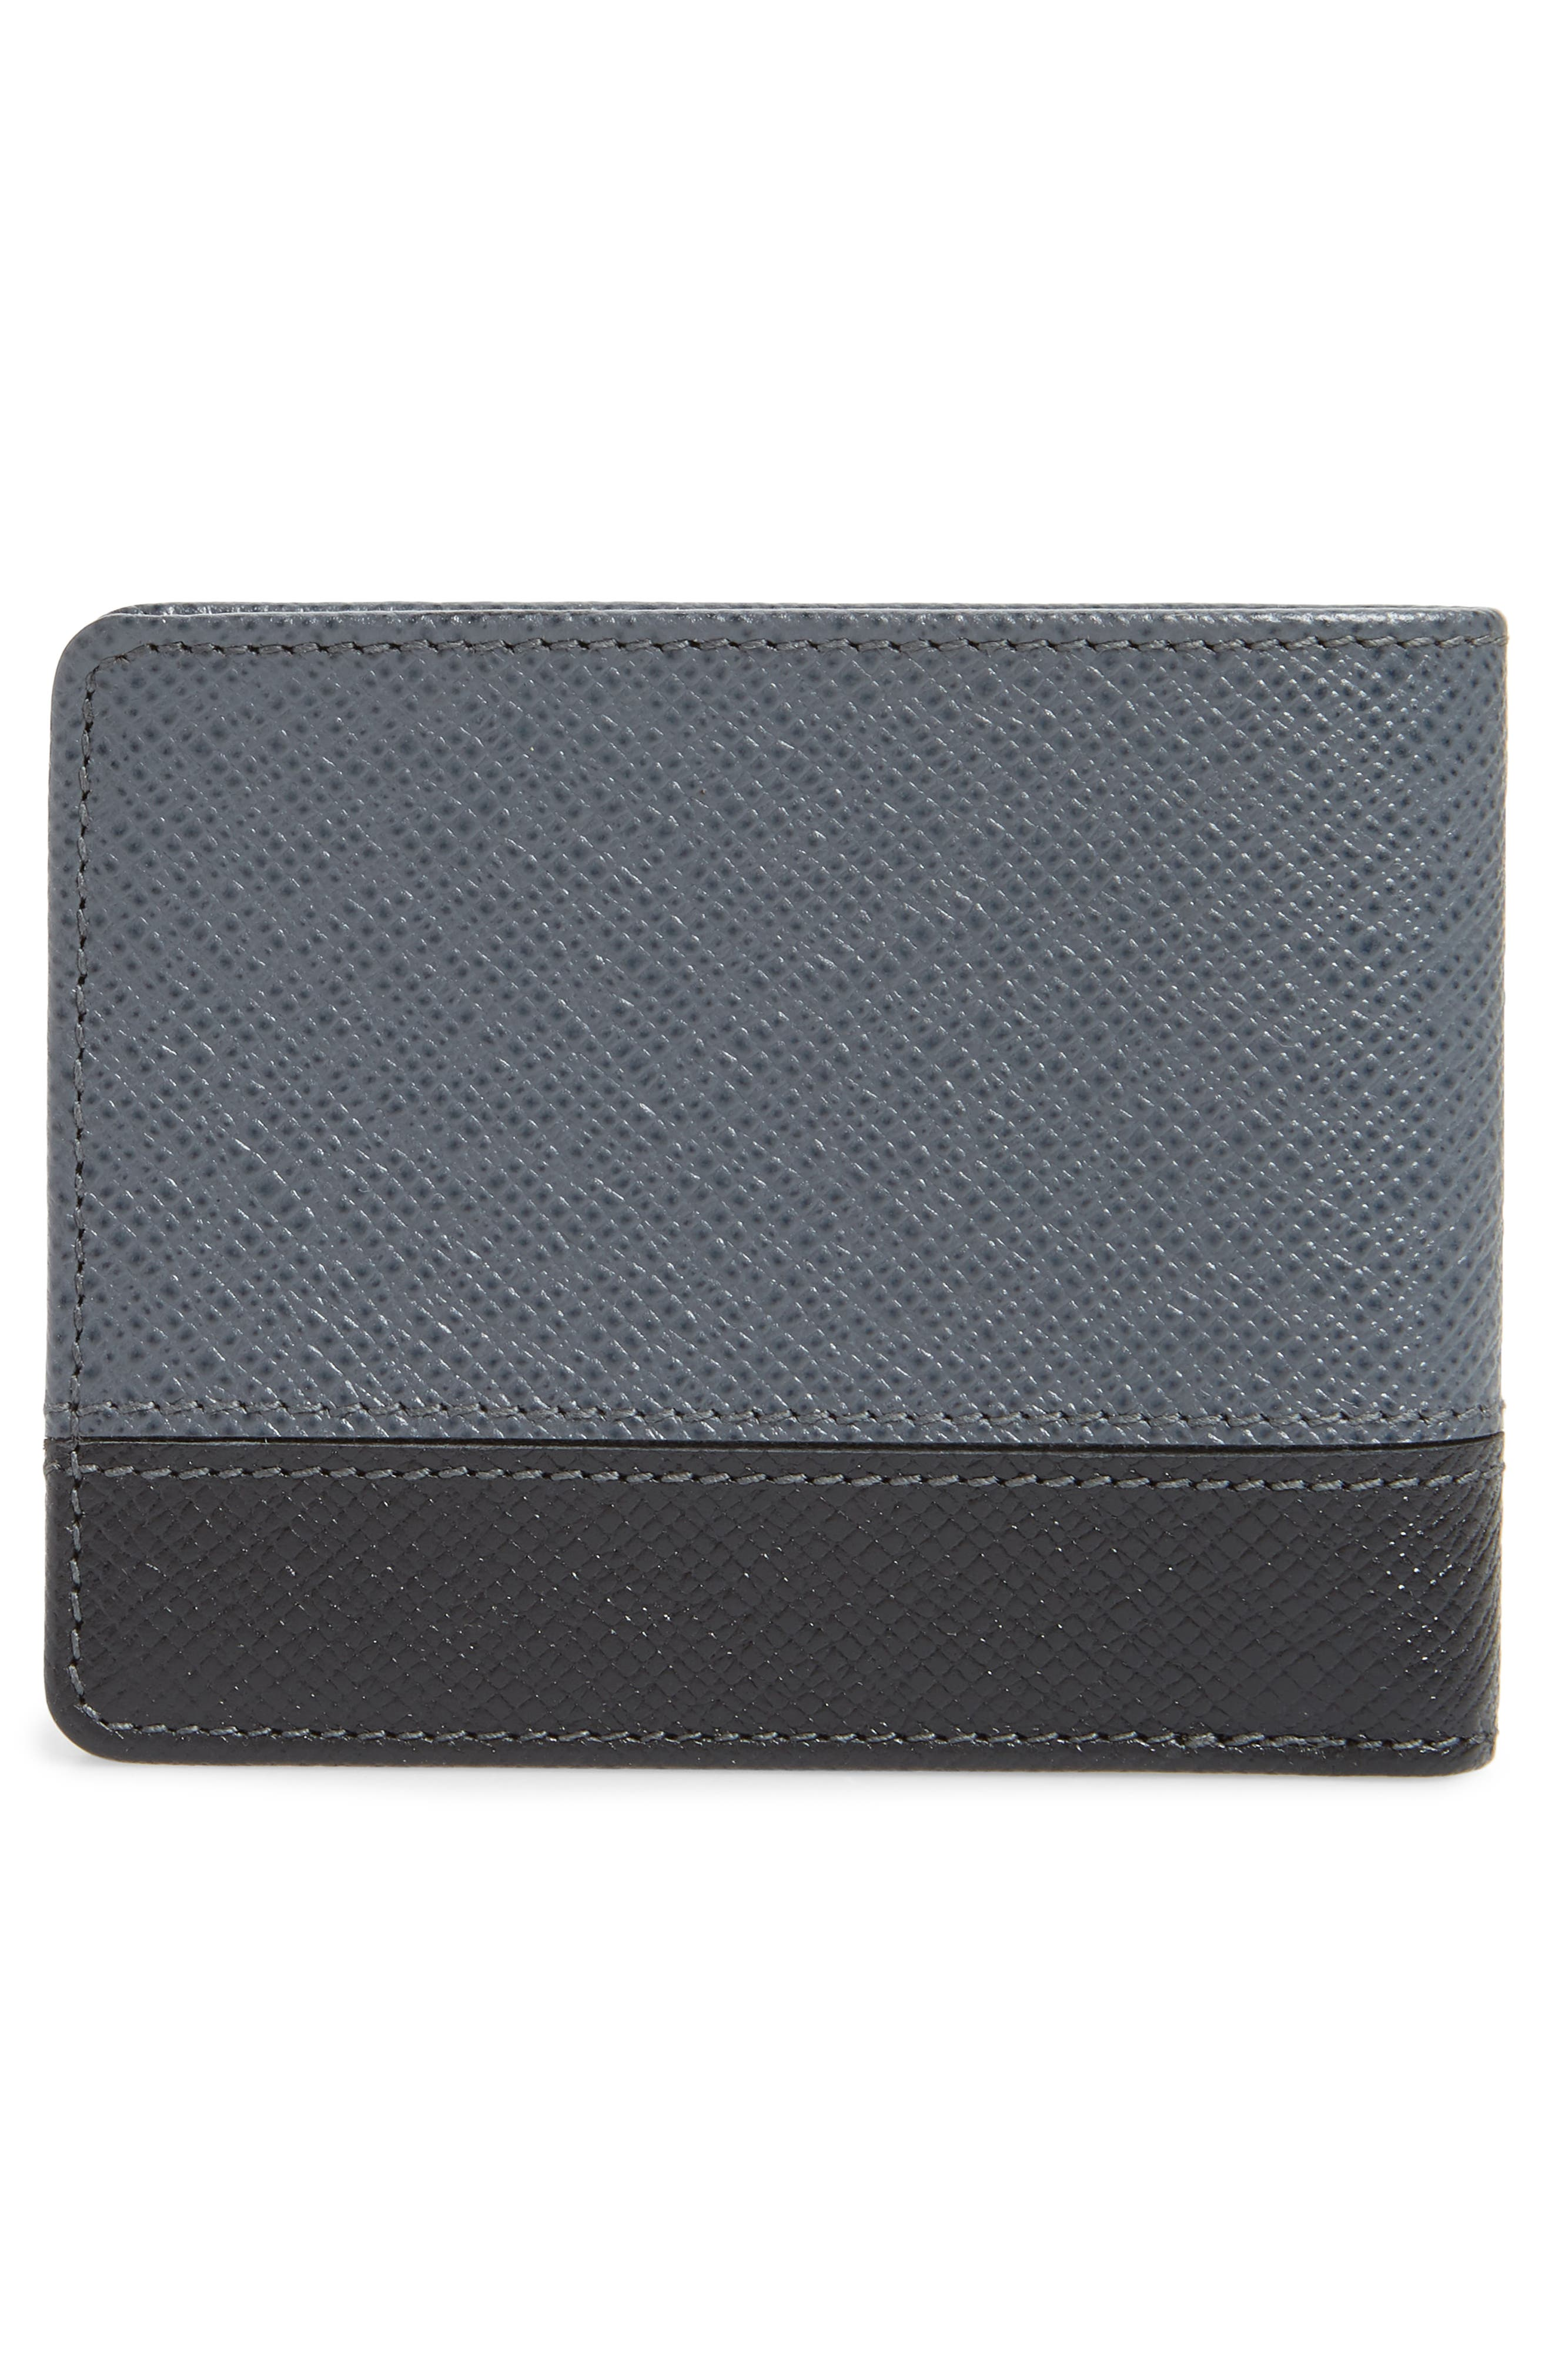 BOSS, Embossed Leather Wallet, Alternate thumbnail 3, color, DARK GREY